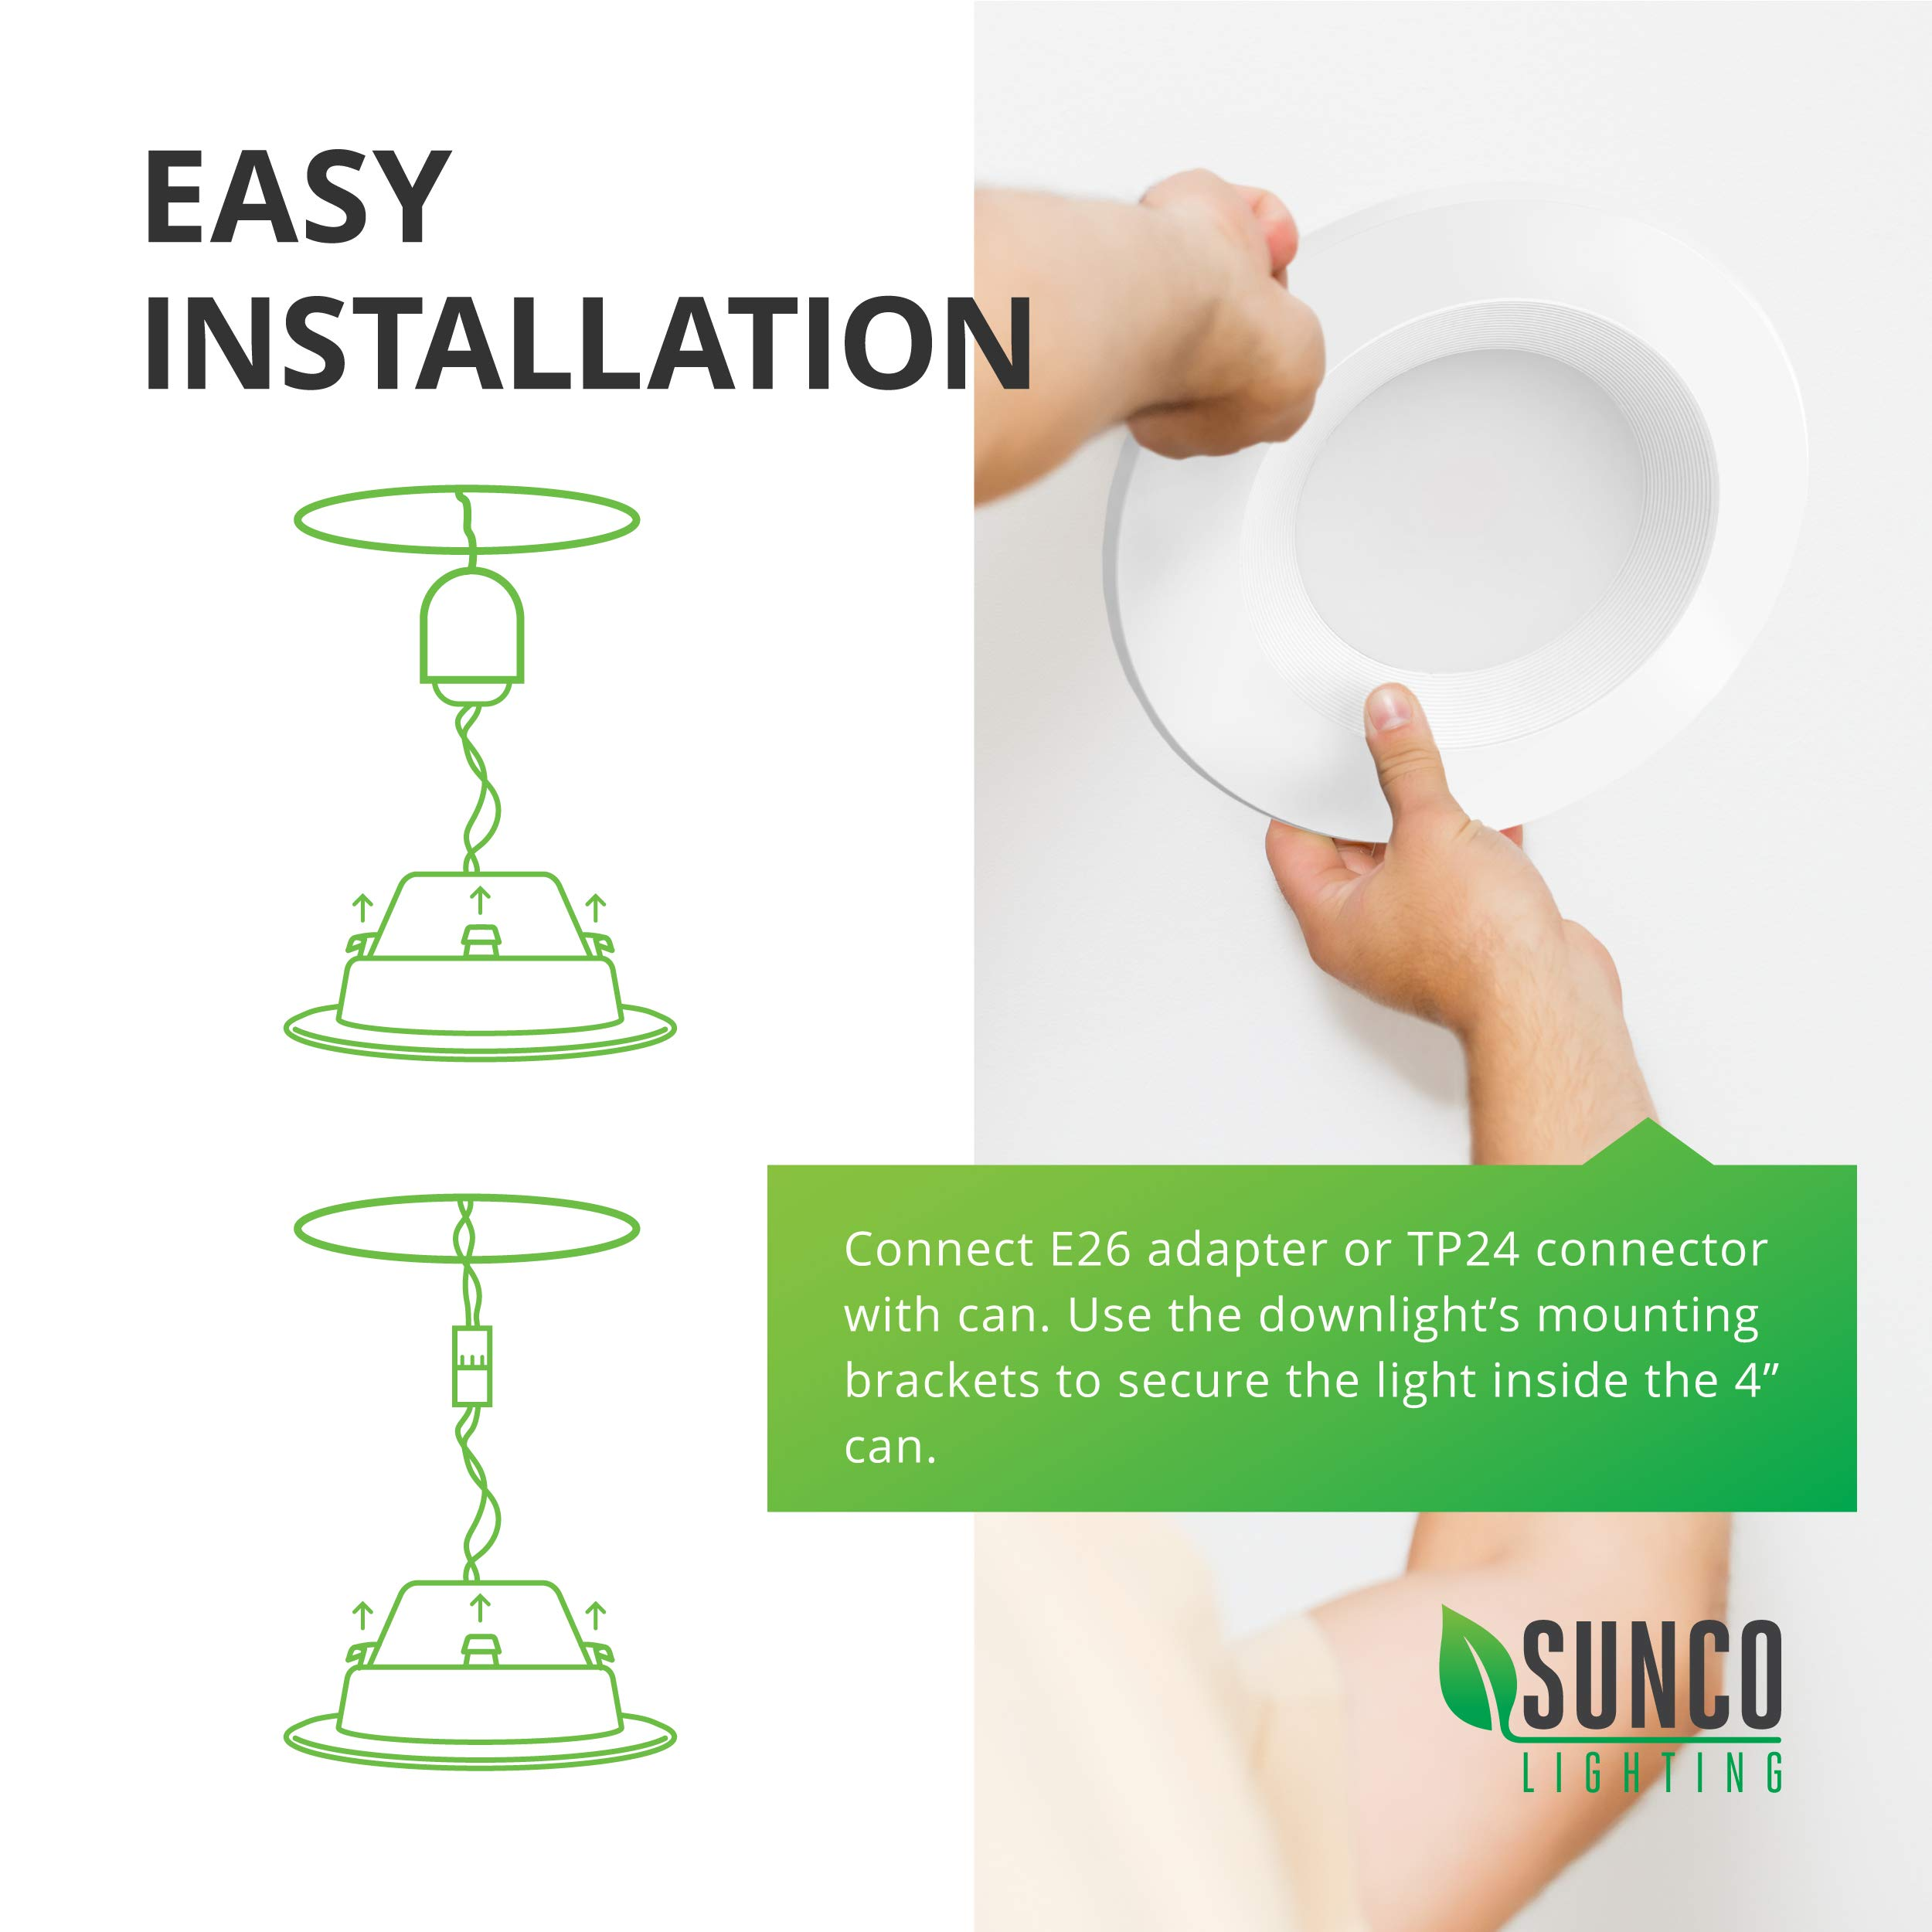 Sunco Lighting 10 Pack 4 Inch Baffle Recessed Retrofit Kit Dimmable LED Light, 11W (40W Replacement), 5000K Kelvin Daylight, Quick/Easy Can Install, 660 Lumen, Wet Rated by Sunco Lighting (Image #6)